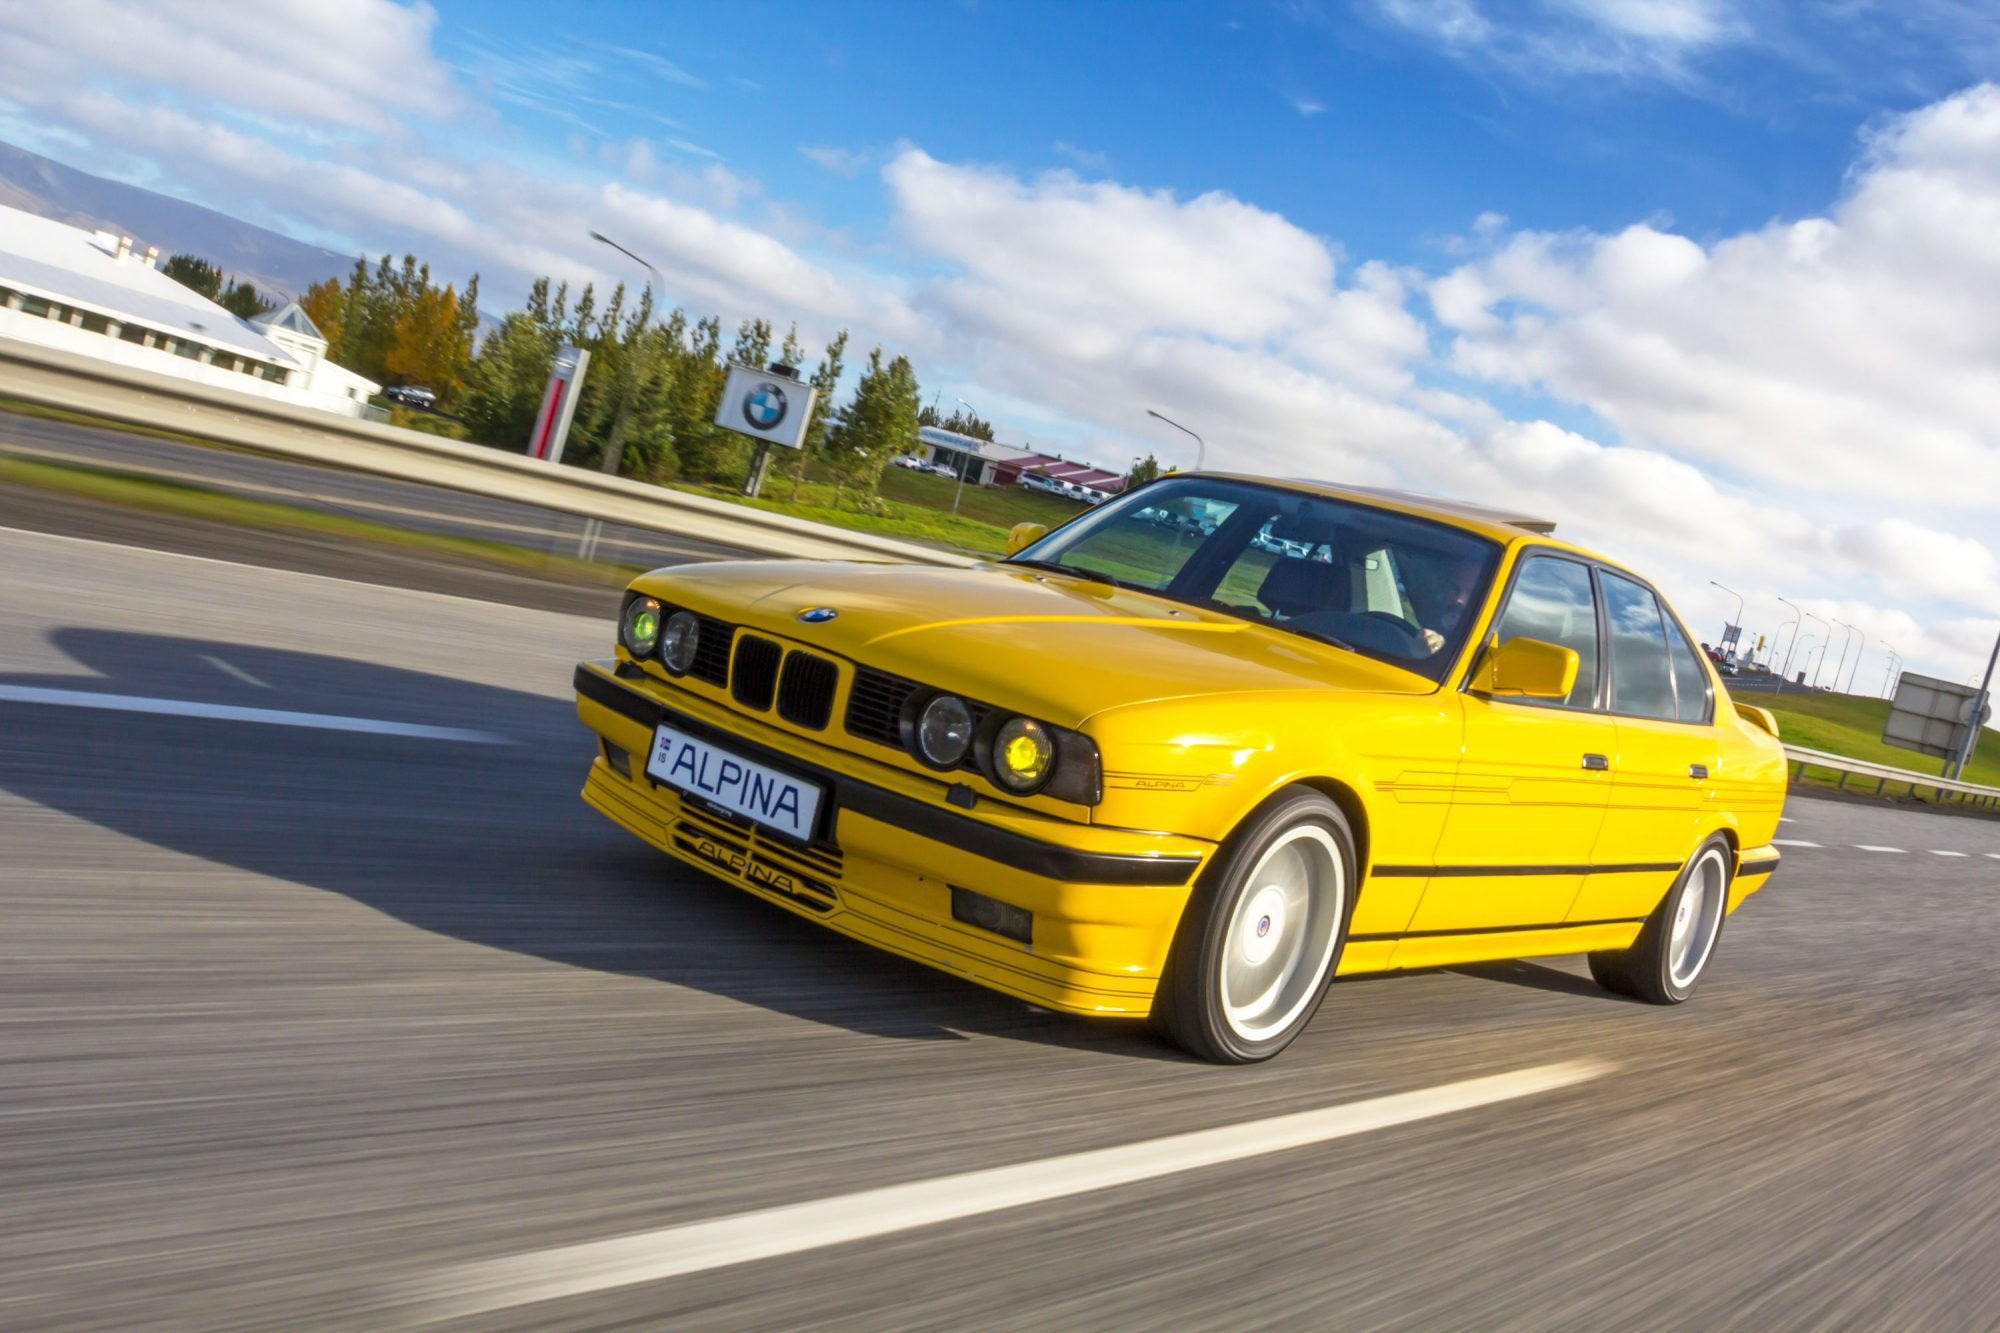 here-s-a-1989-bmw-5-series-tuned-by-alpina-to-nearly-top-200-mph-1476934185336-2000x1333